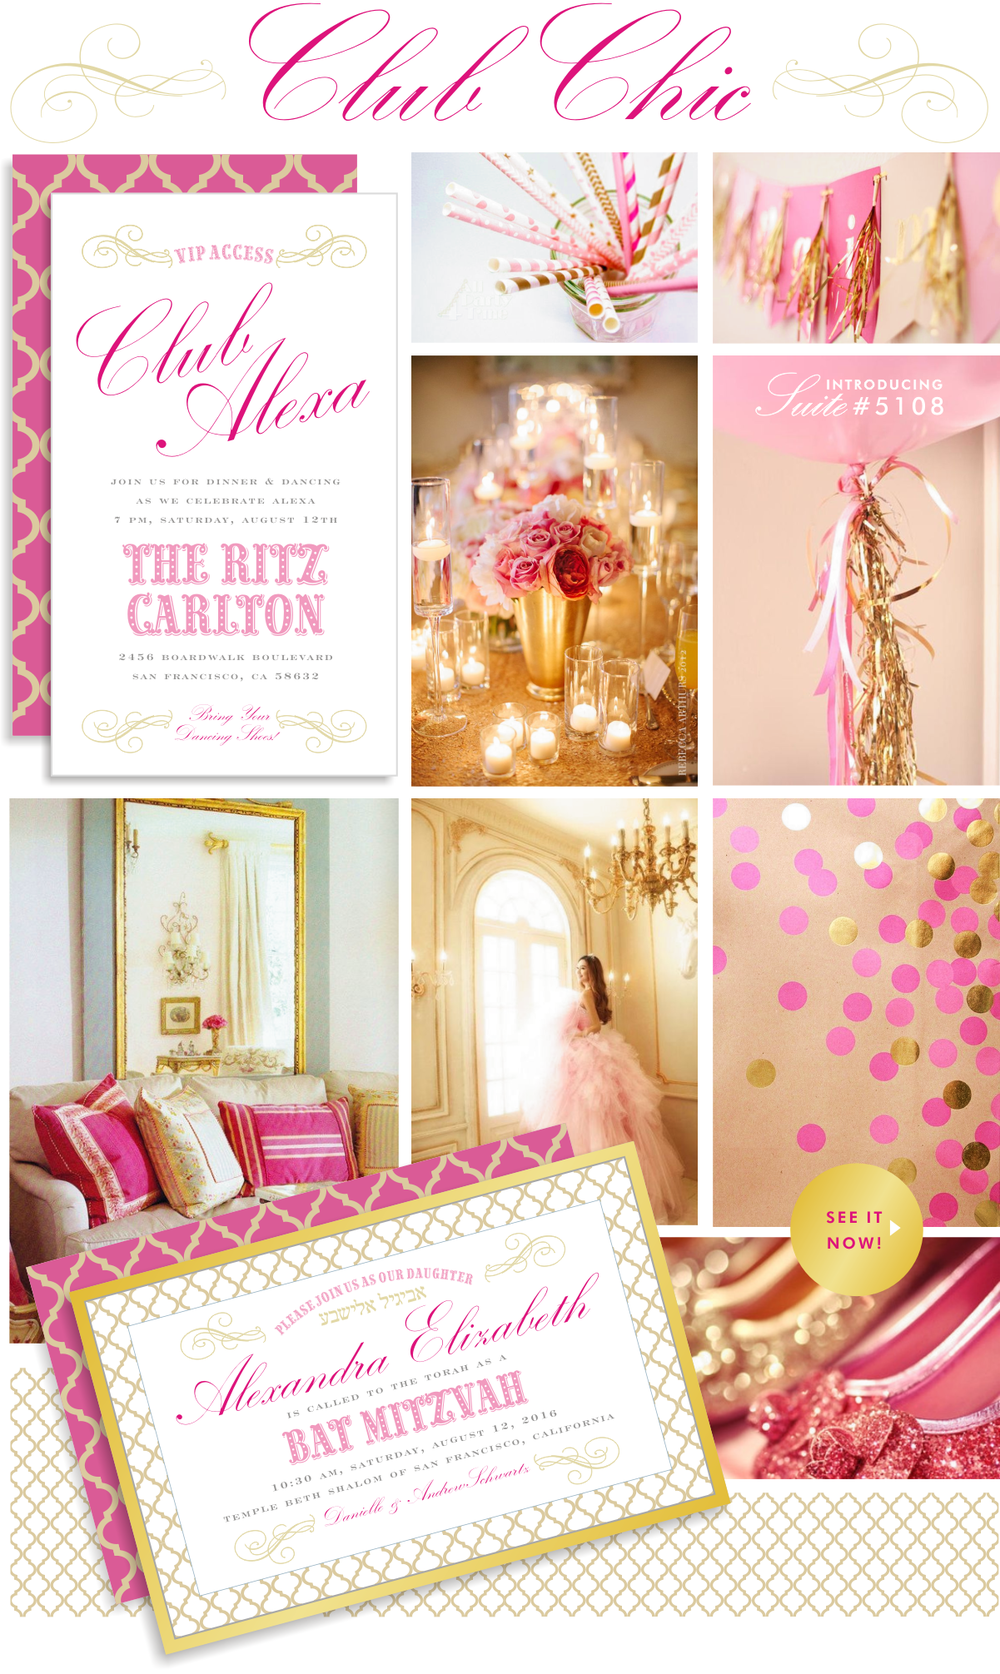 Sarah Schwartz Bat Mitzvah Club Chic Ideas in Pink